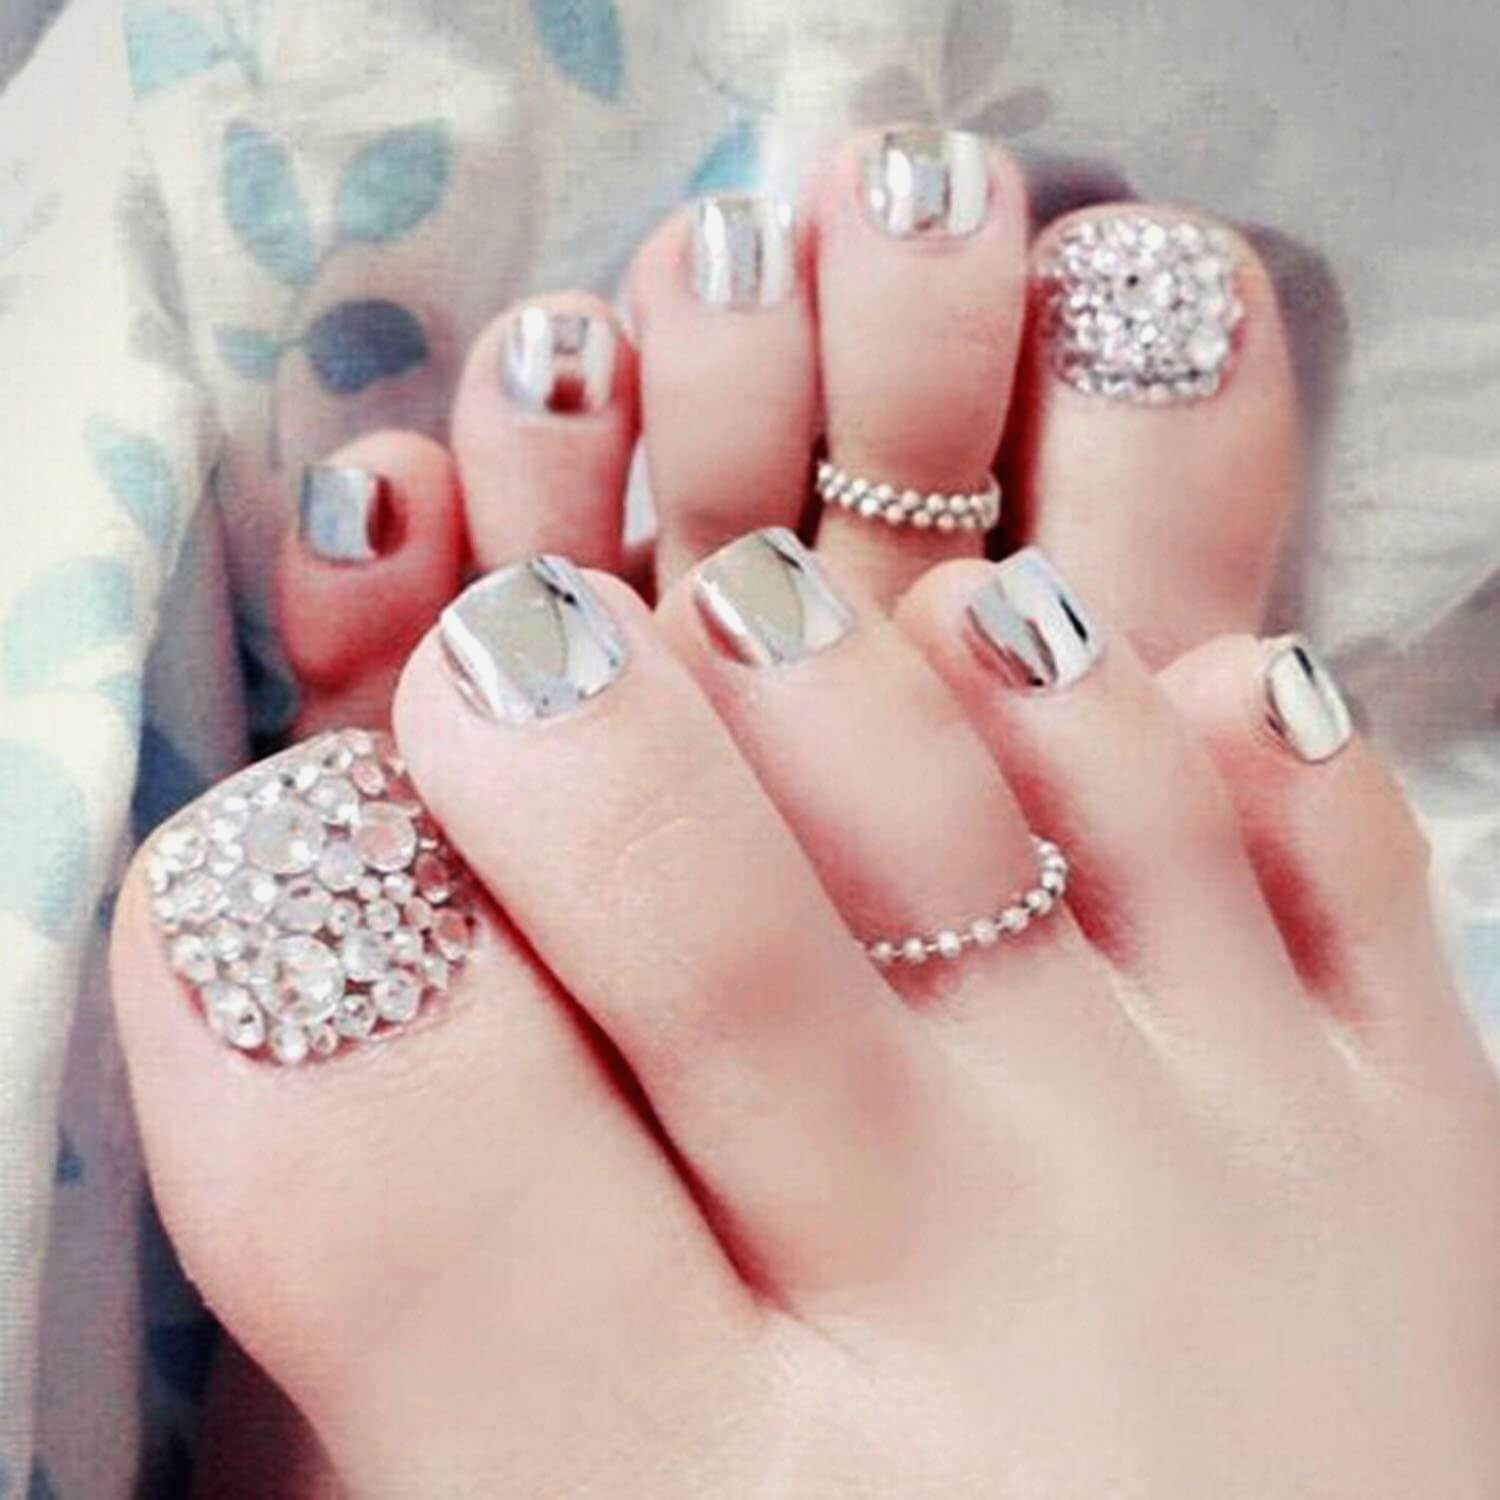 The fashion of Jewels on the Nails